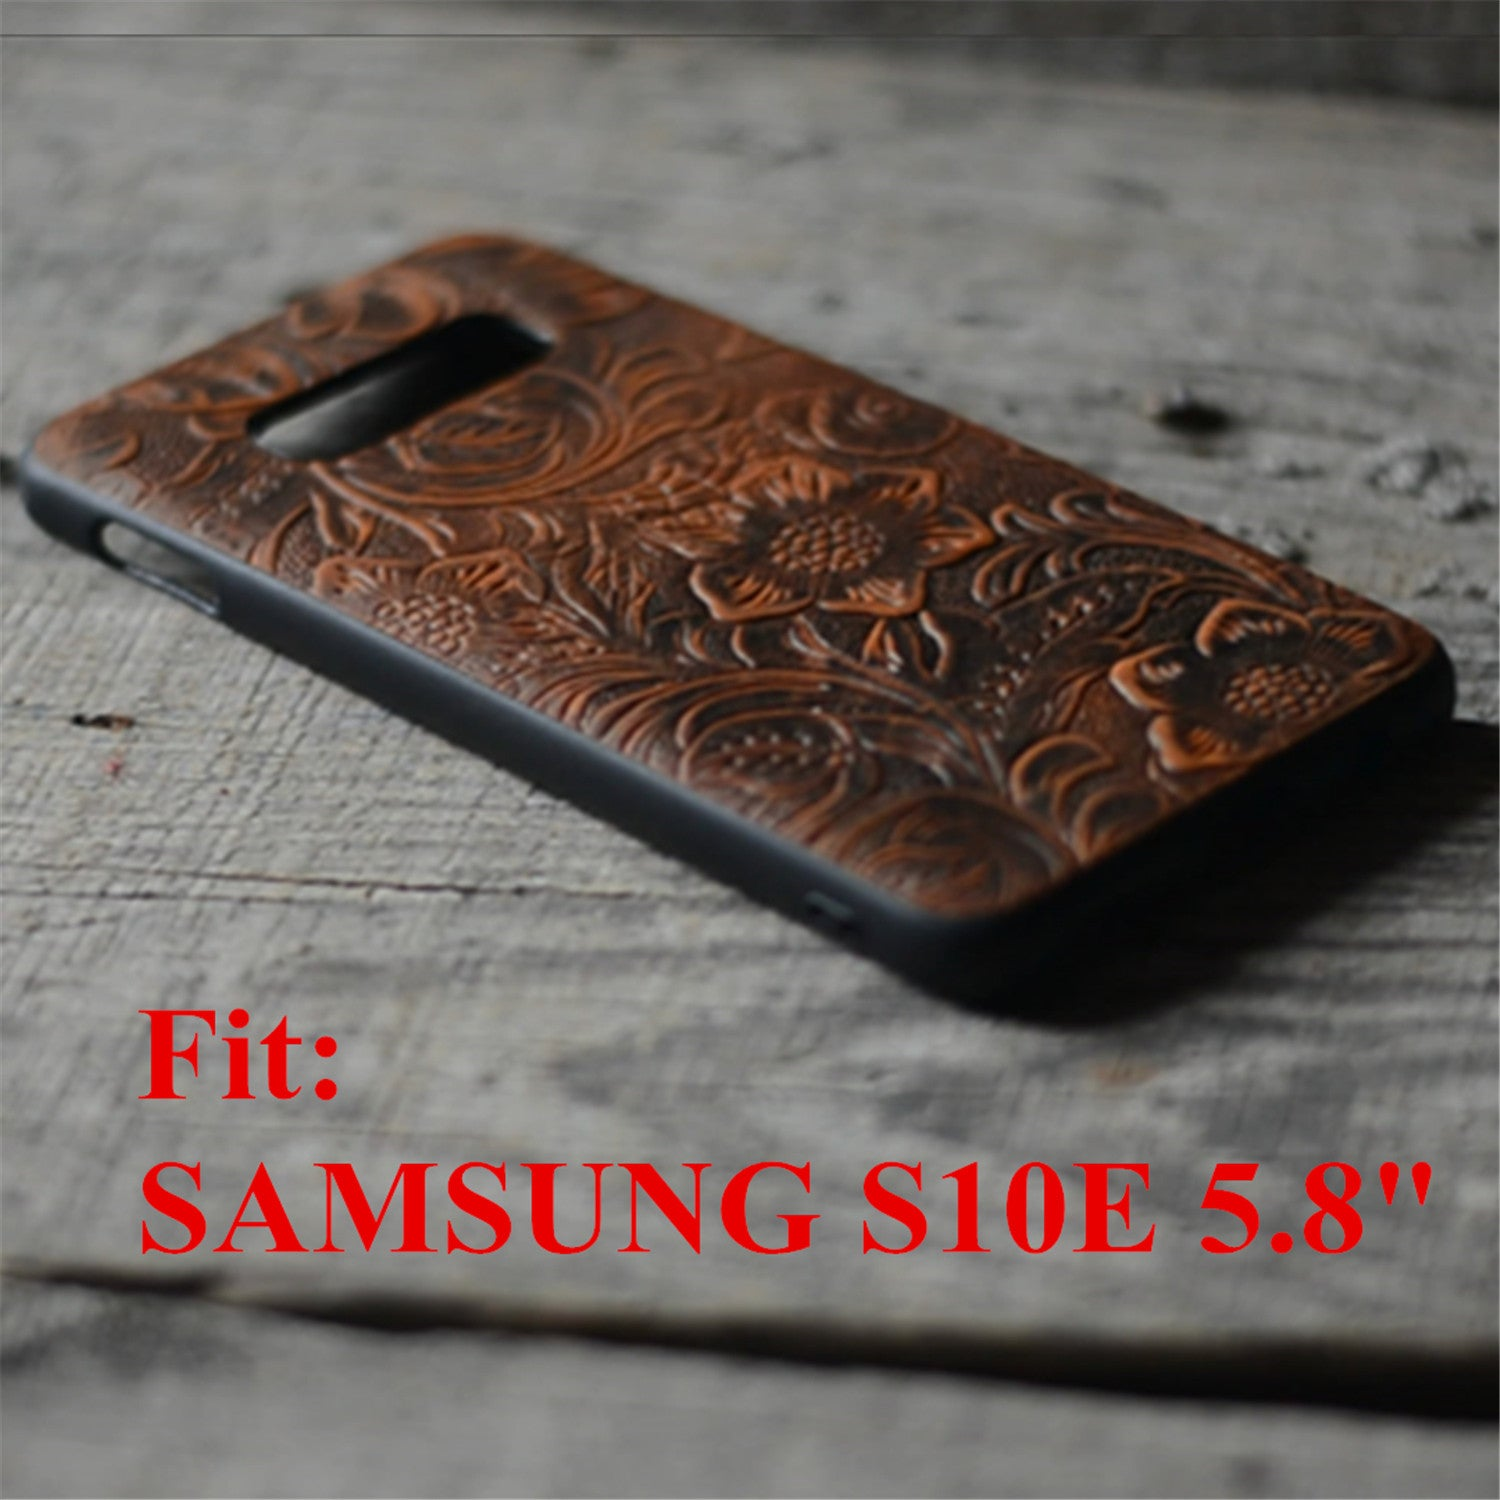 JJNUSA Handmade Leather Case for Samsung Galaxy s10e 5.8 inches Back Case